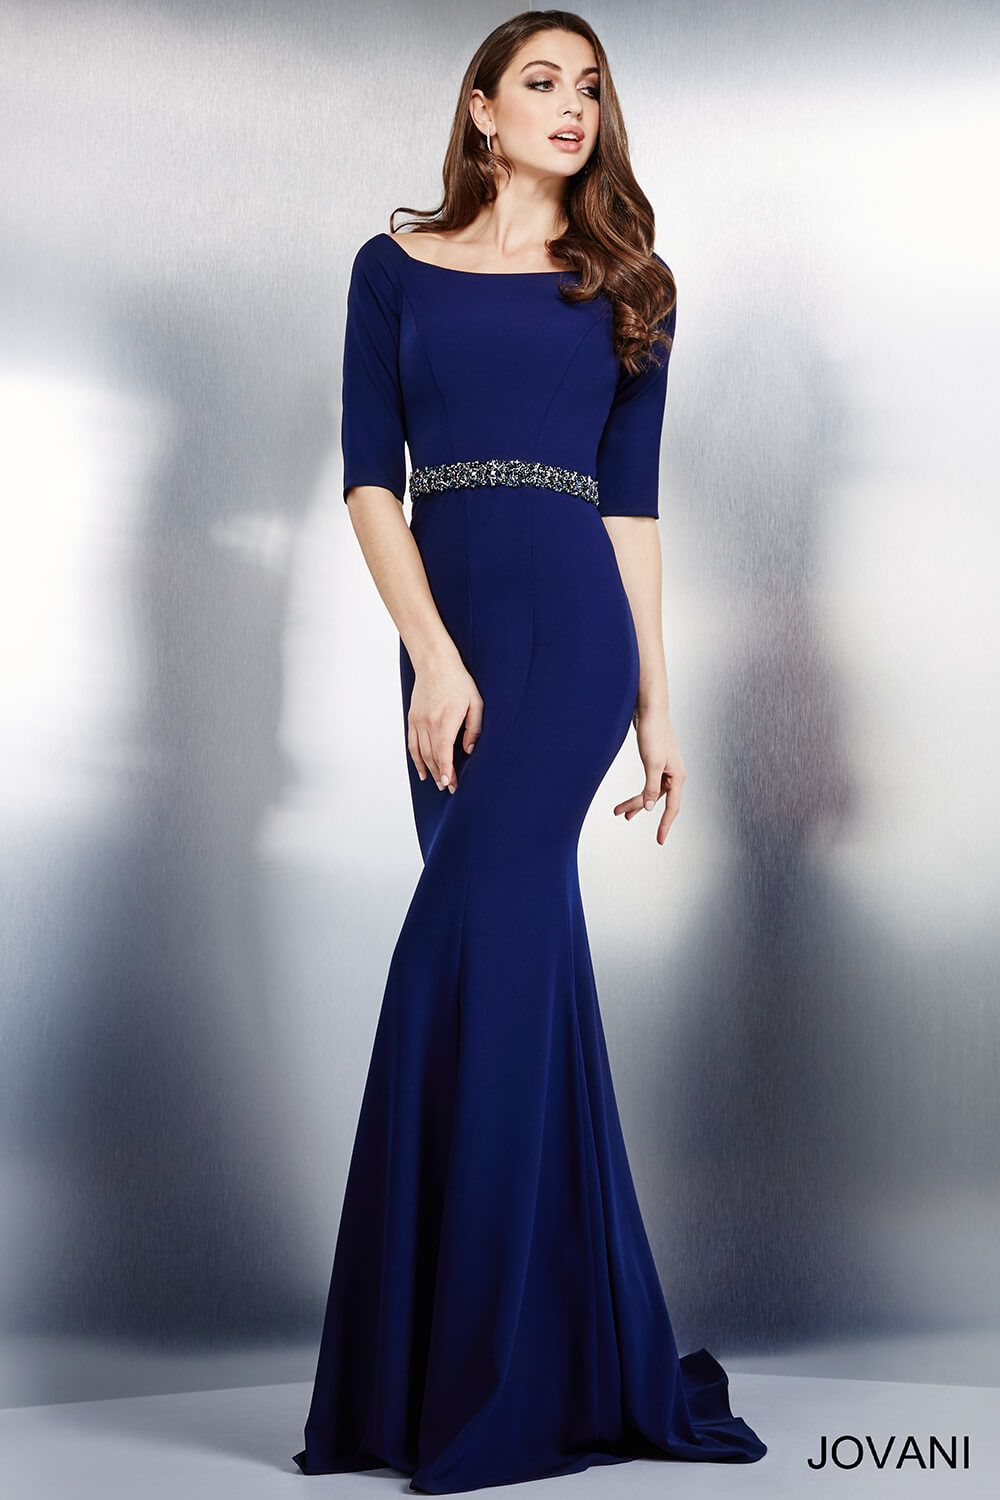 Stunning navy ponte knit evening gown with three quarter sleeves ...